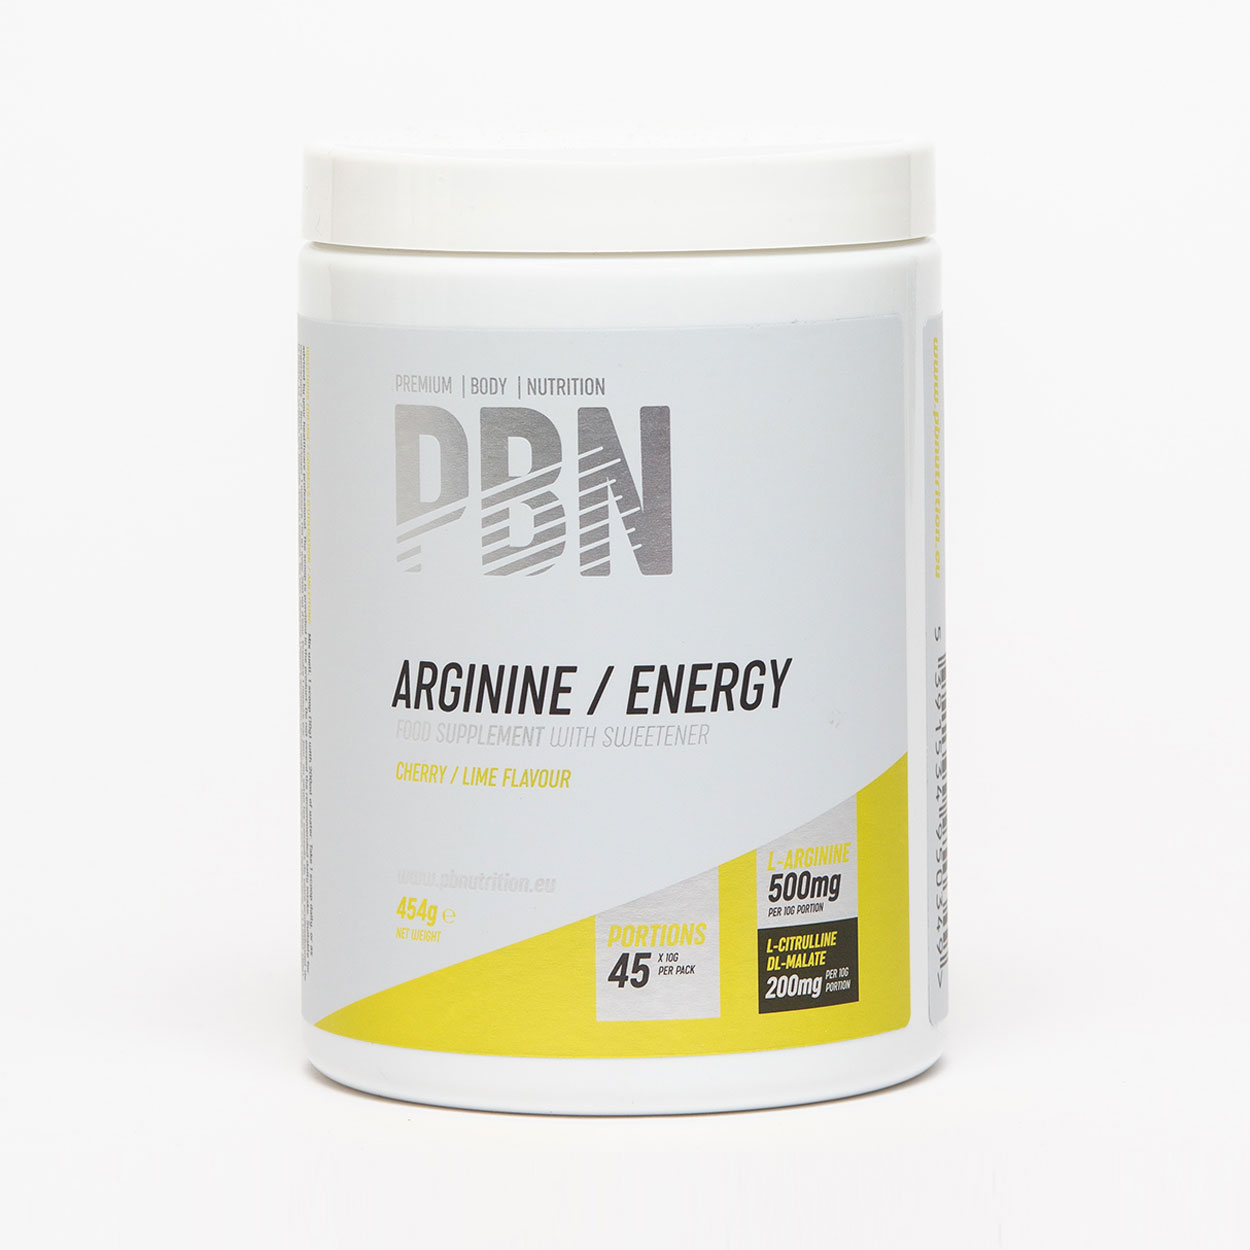 Arginine/Energy Cherry/Lime Jar